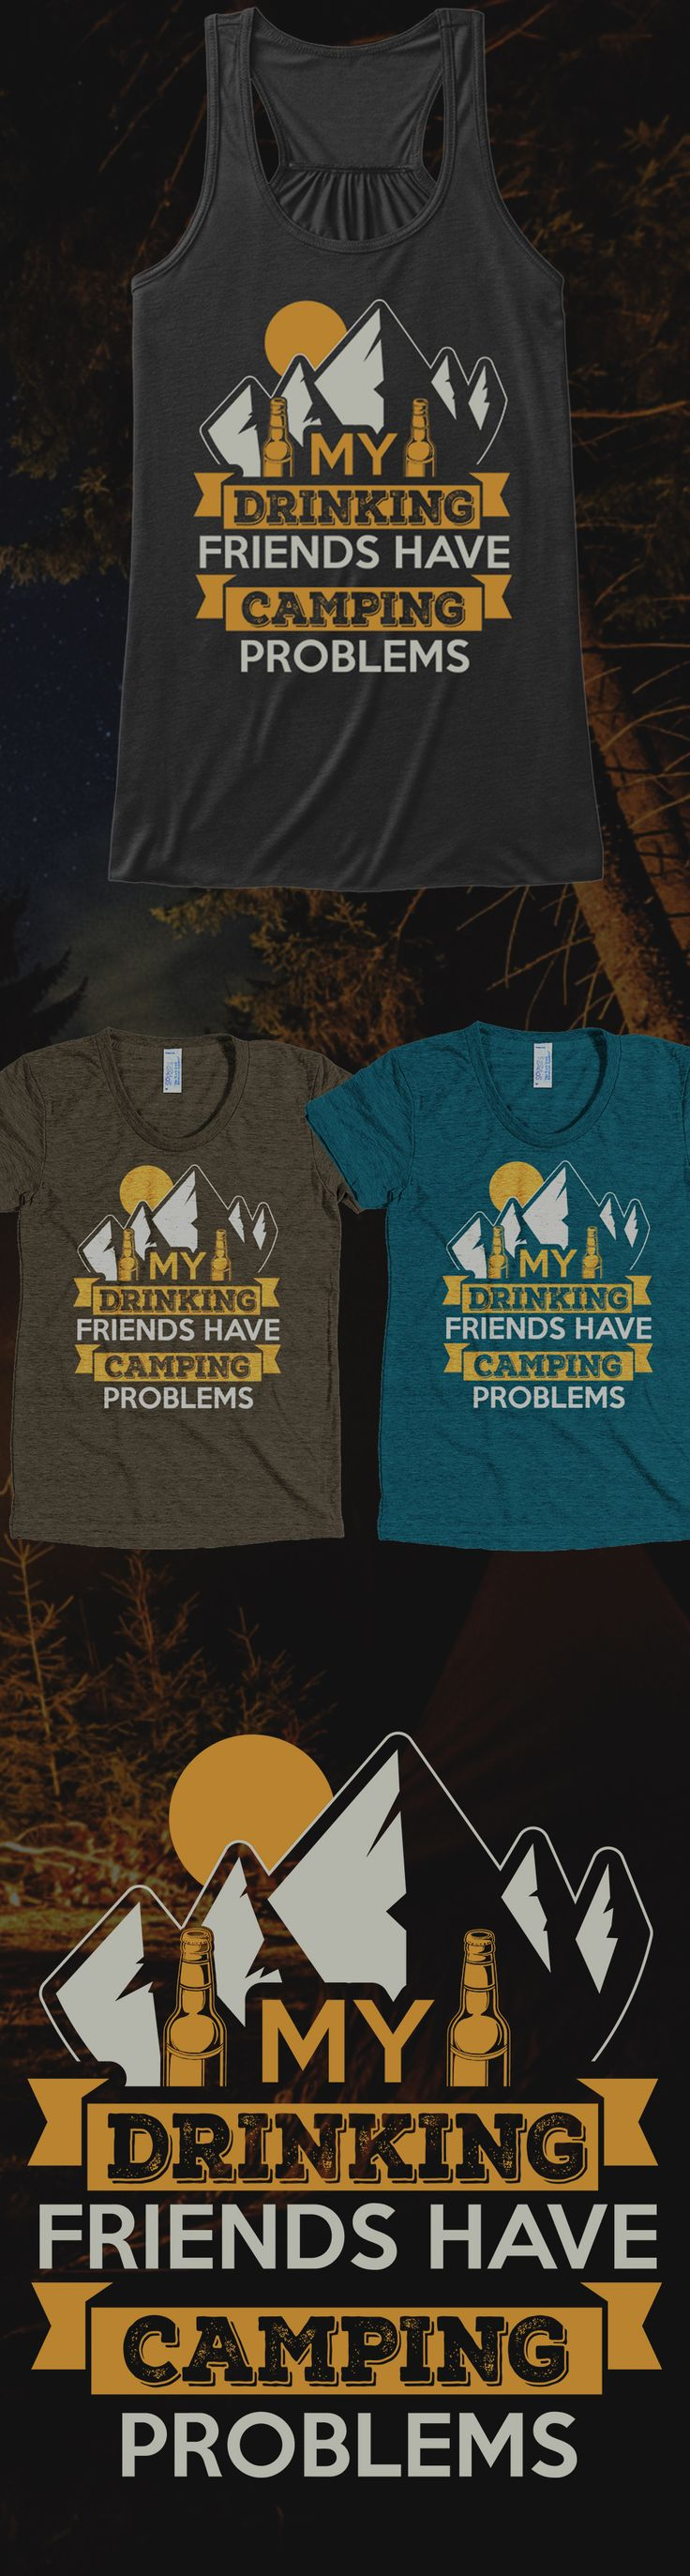 Shirt design killeen tx - Do You Have A Camping Problem Check Out This Awesome Camping Problems T